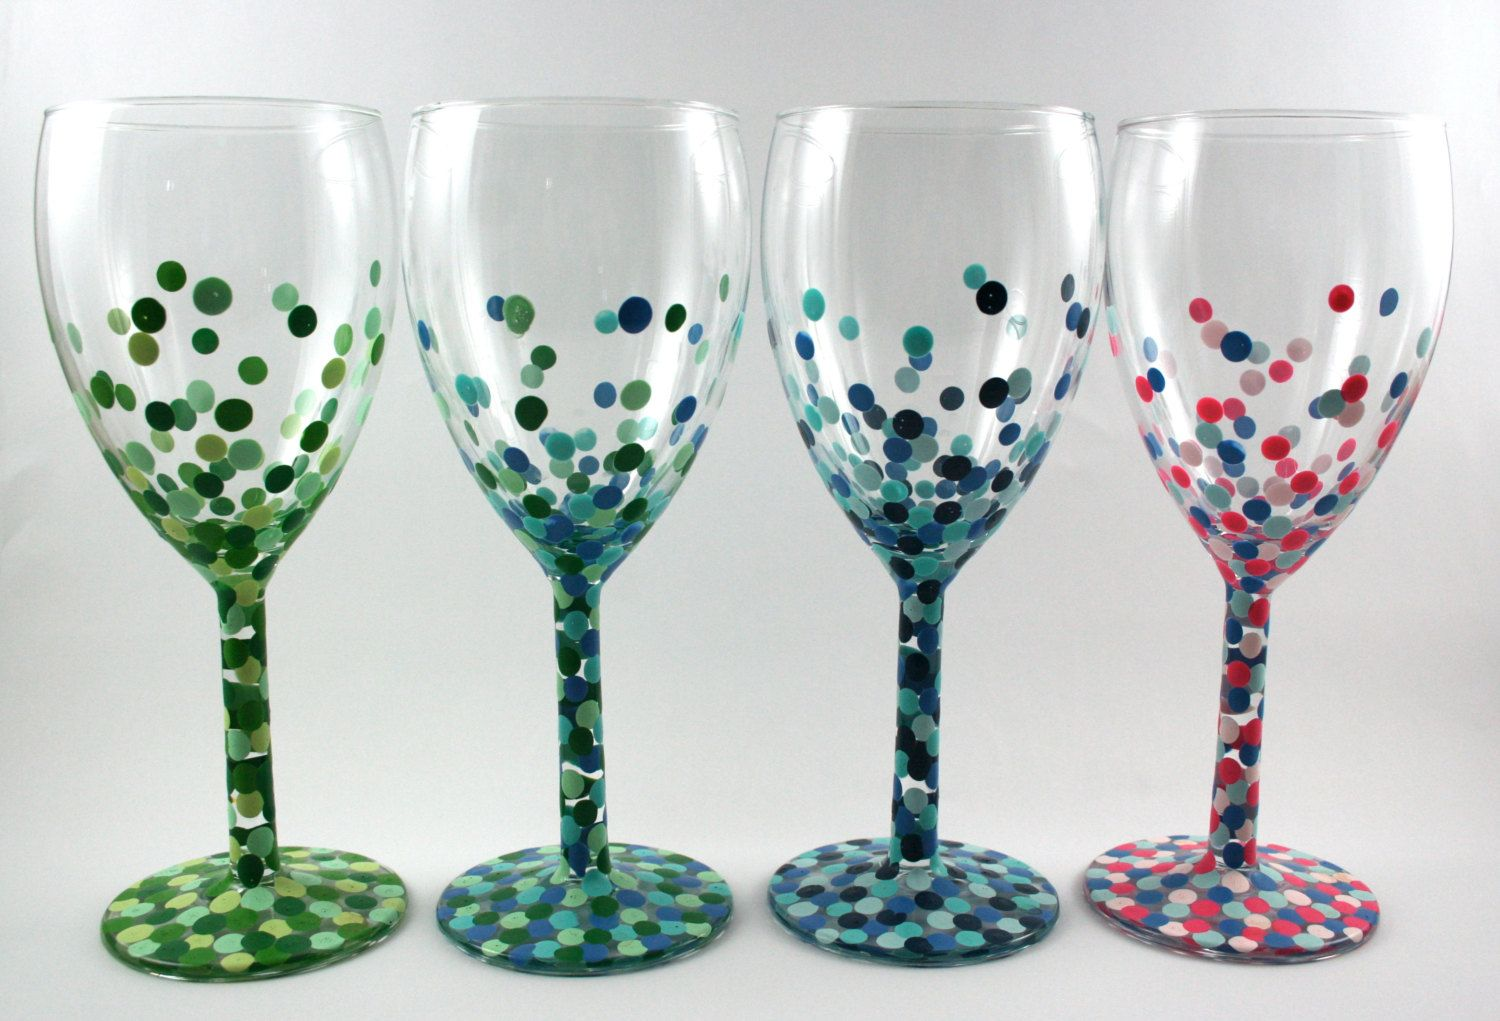 78 images about wine glasses on pinterest painted wine glasses mosaics and glasses wine glass - Wine Glass Design Ideas